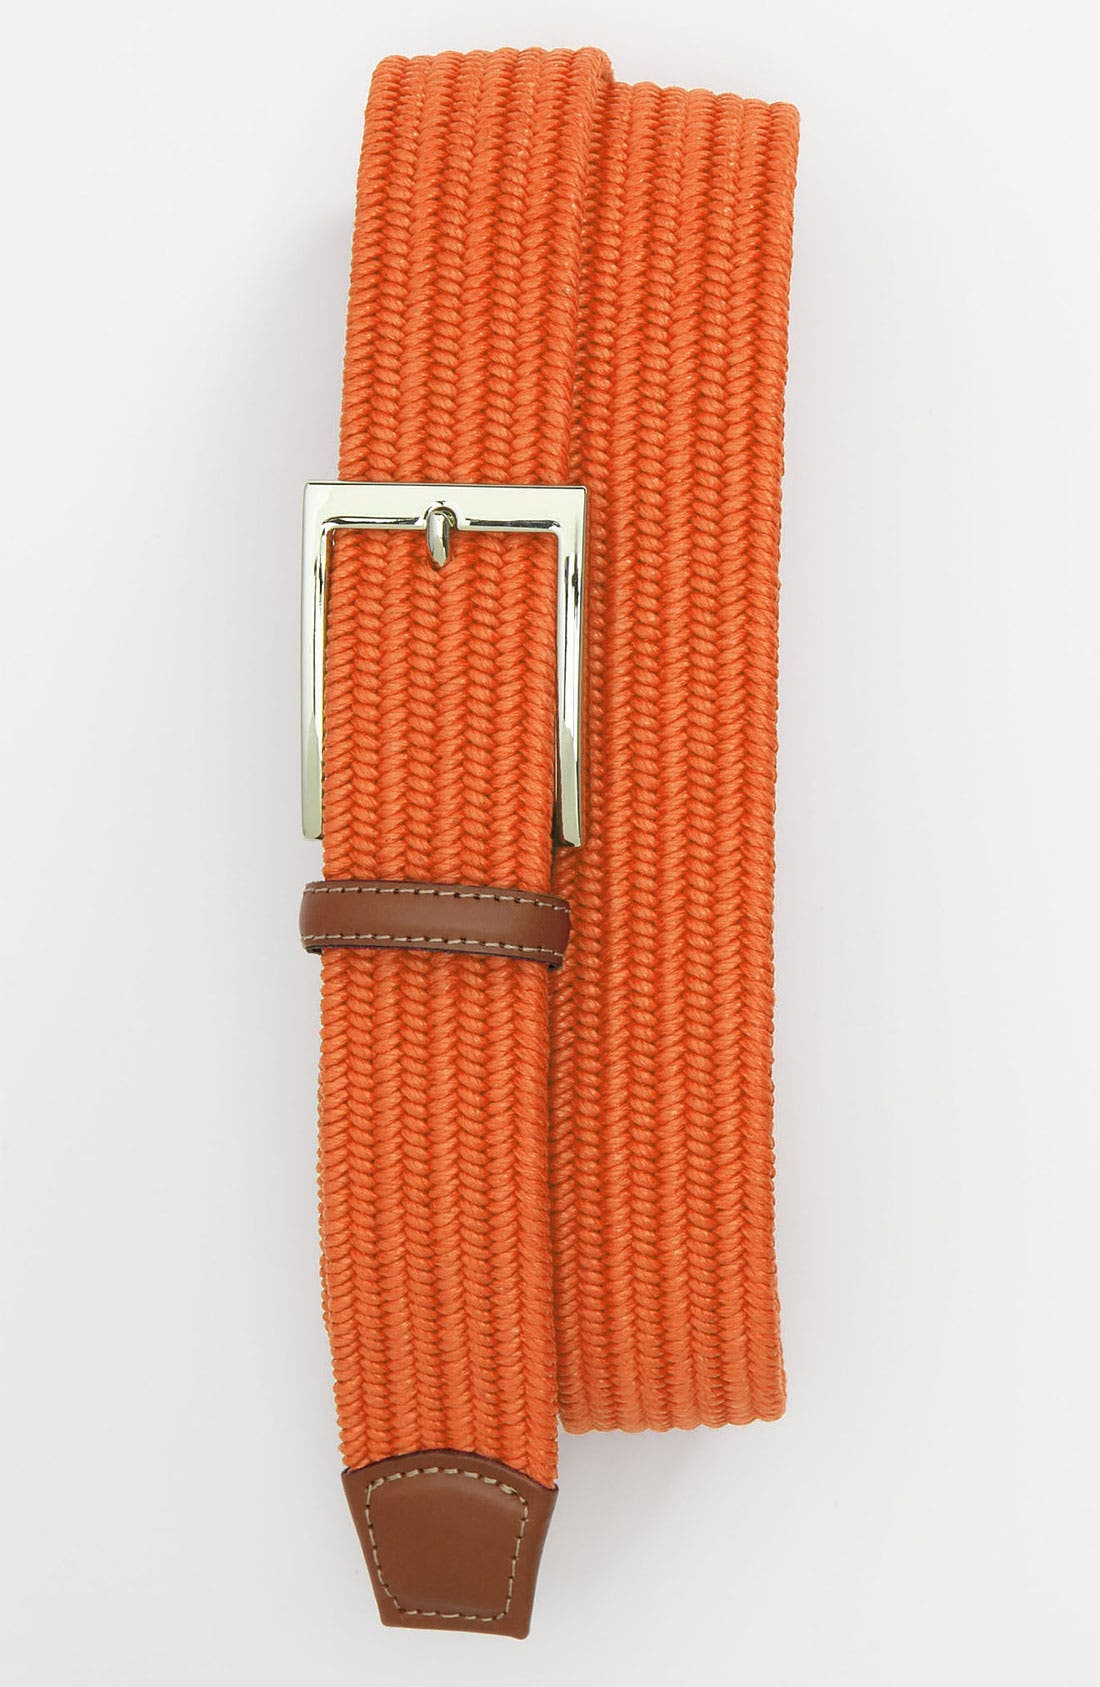 Main Image - Torino Belts Cotton Belt